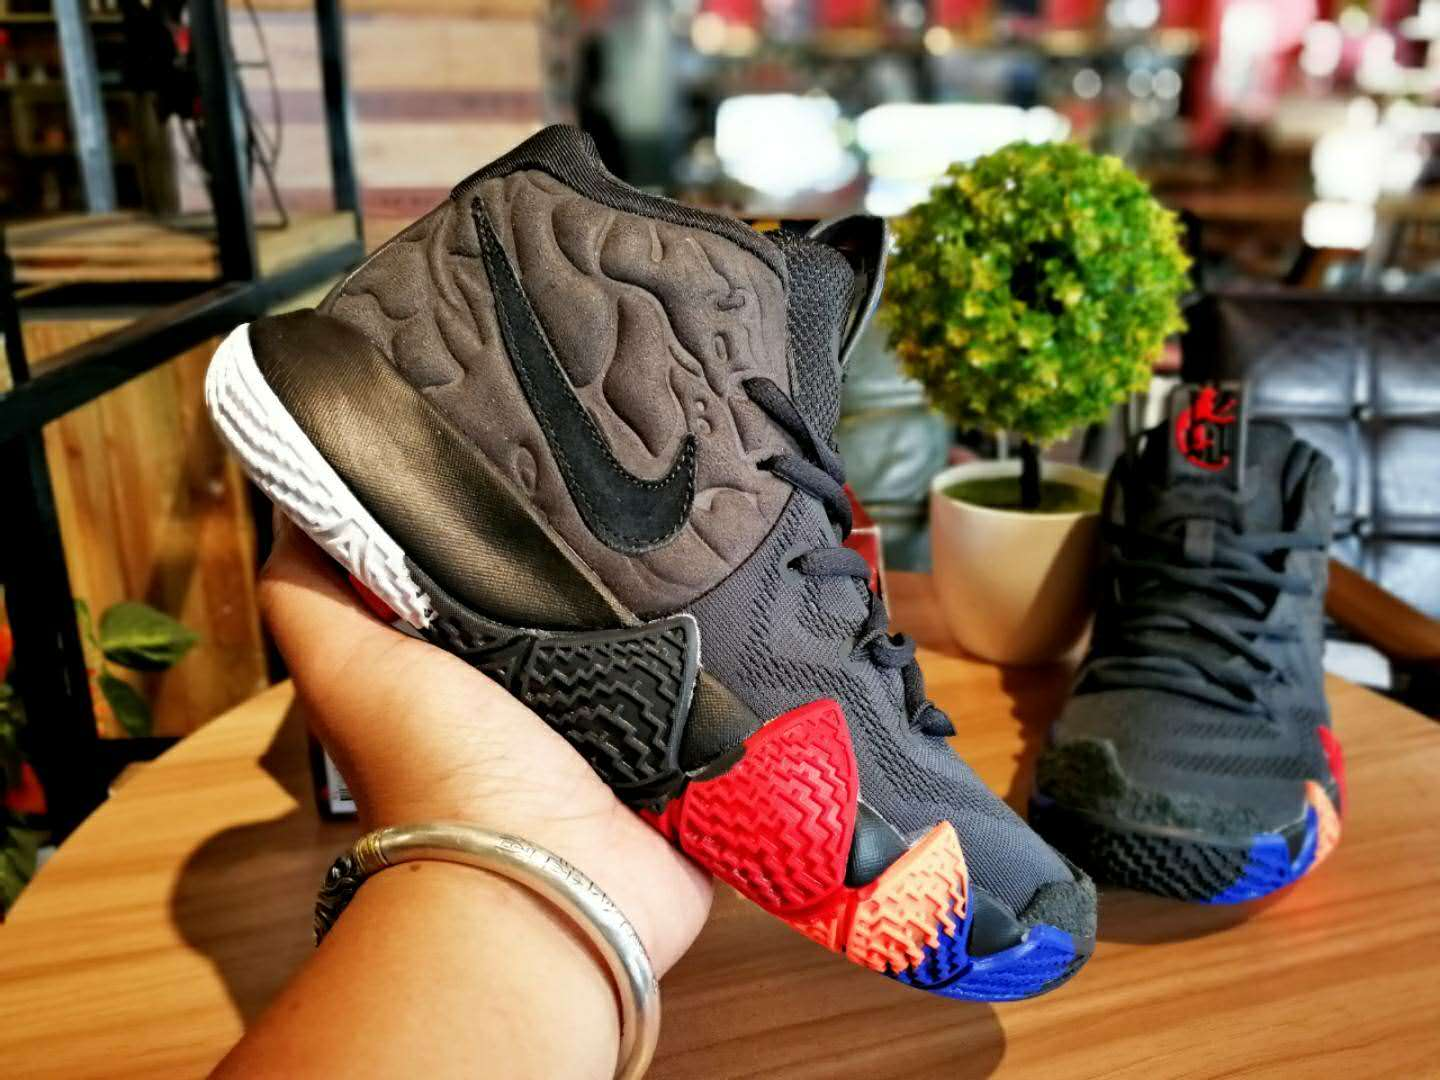 brand new 80a73 cf004 Nike Kyrie 4 Year of the Monkey Black Grey Brown Shoes